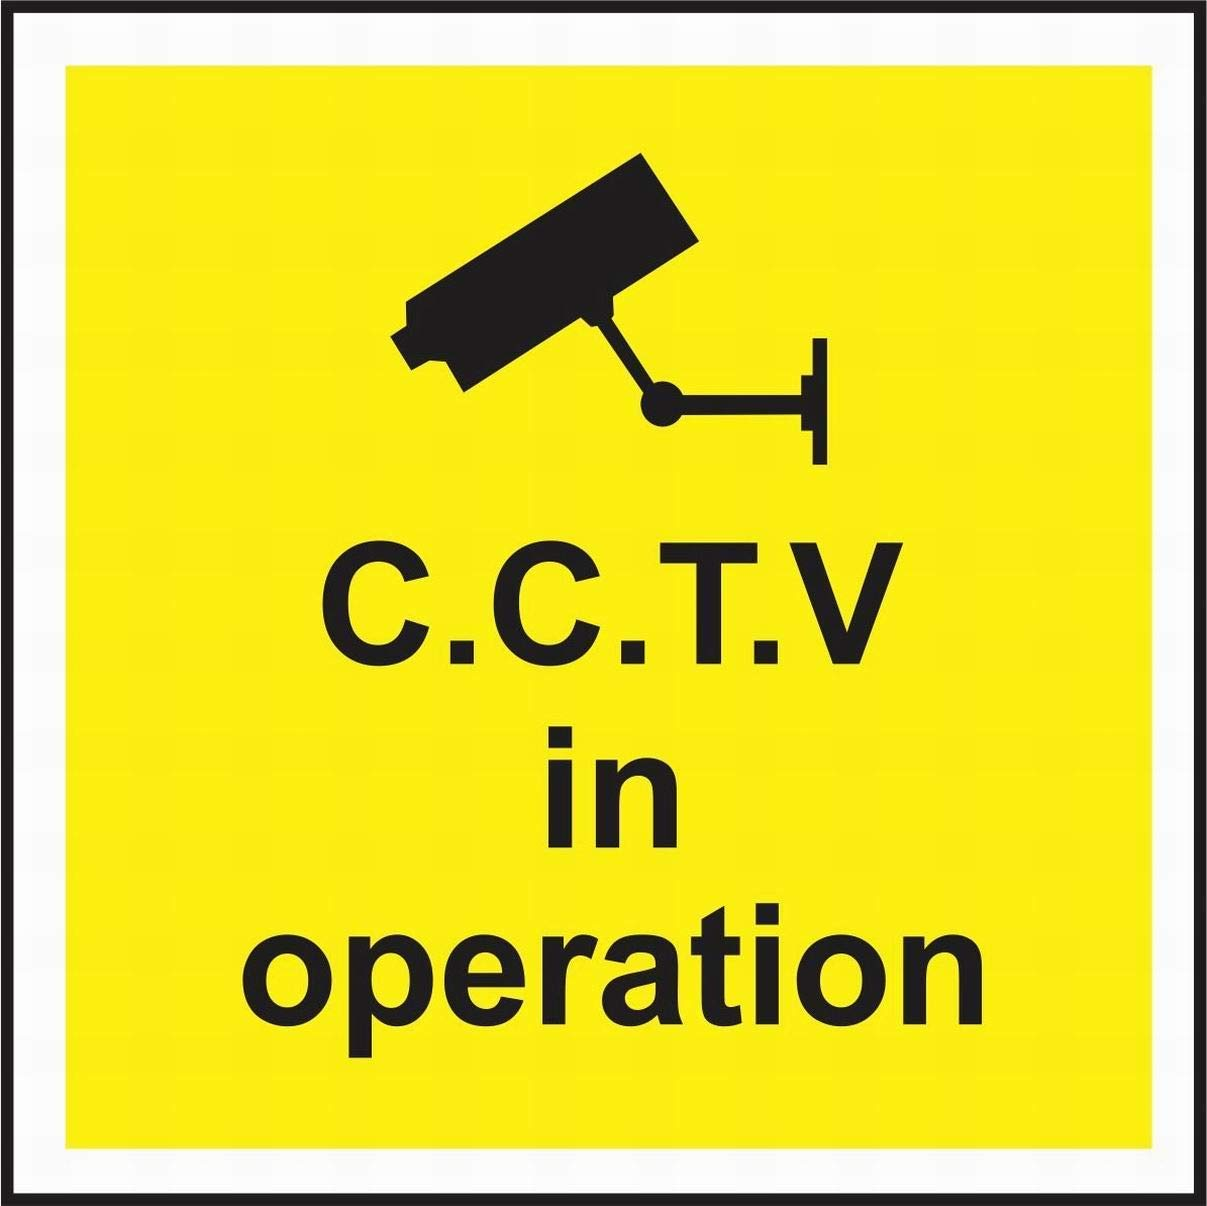 LORENZO CCTV In Operation Vintage Metal Cartel de Chapa ...